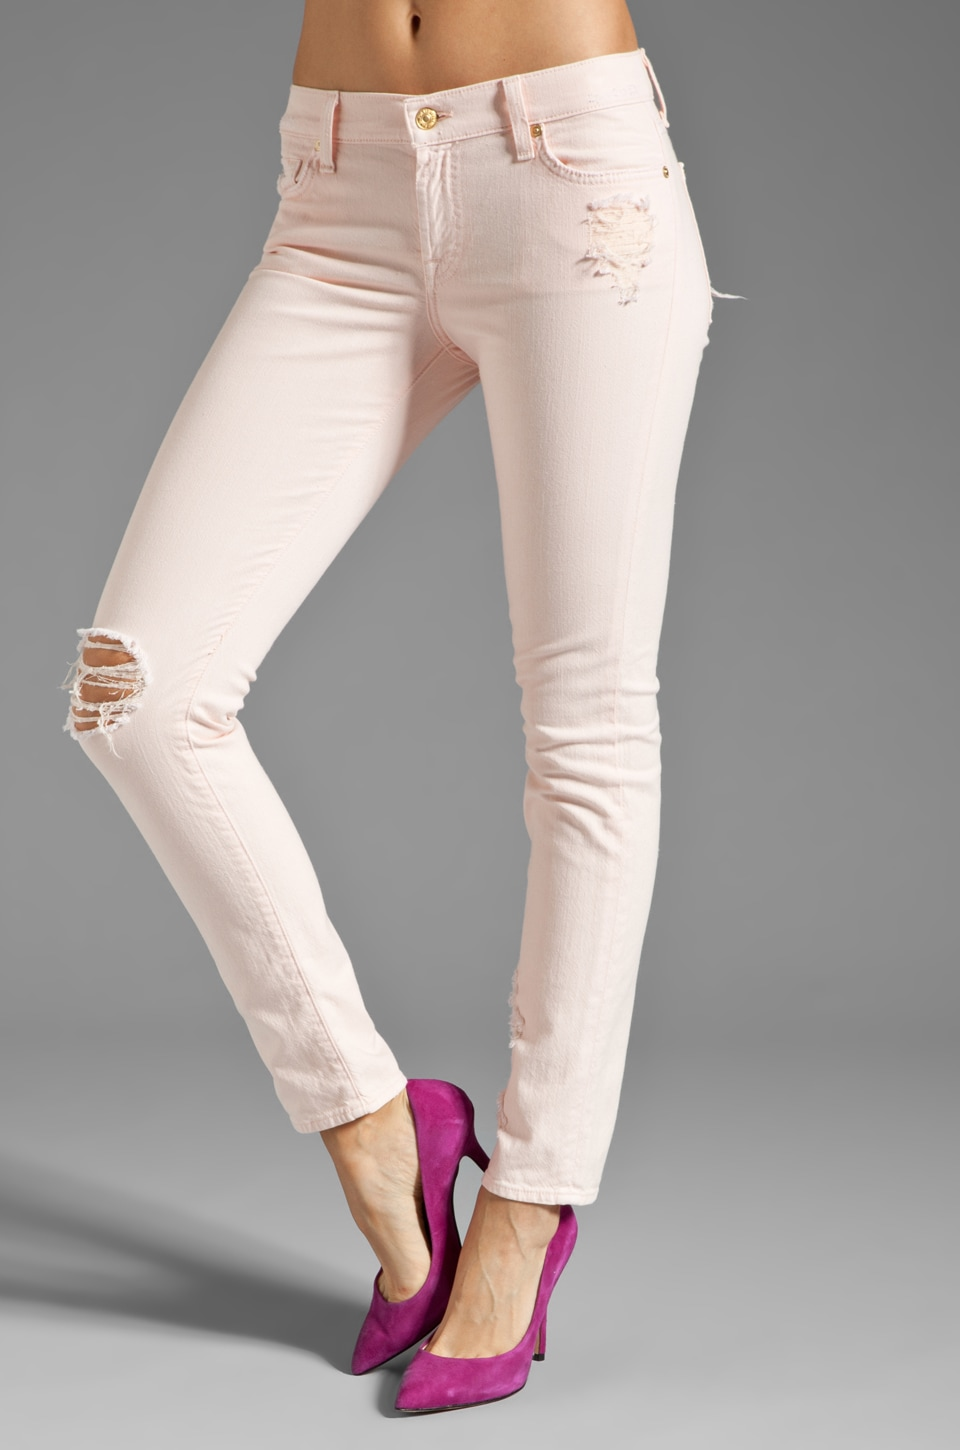 7 For All Mankind The Slim Cigarette in Ballet Pink